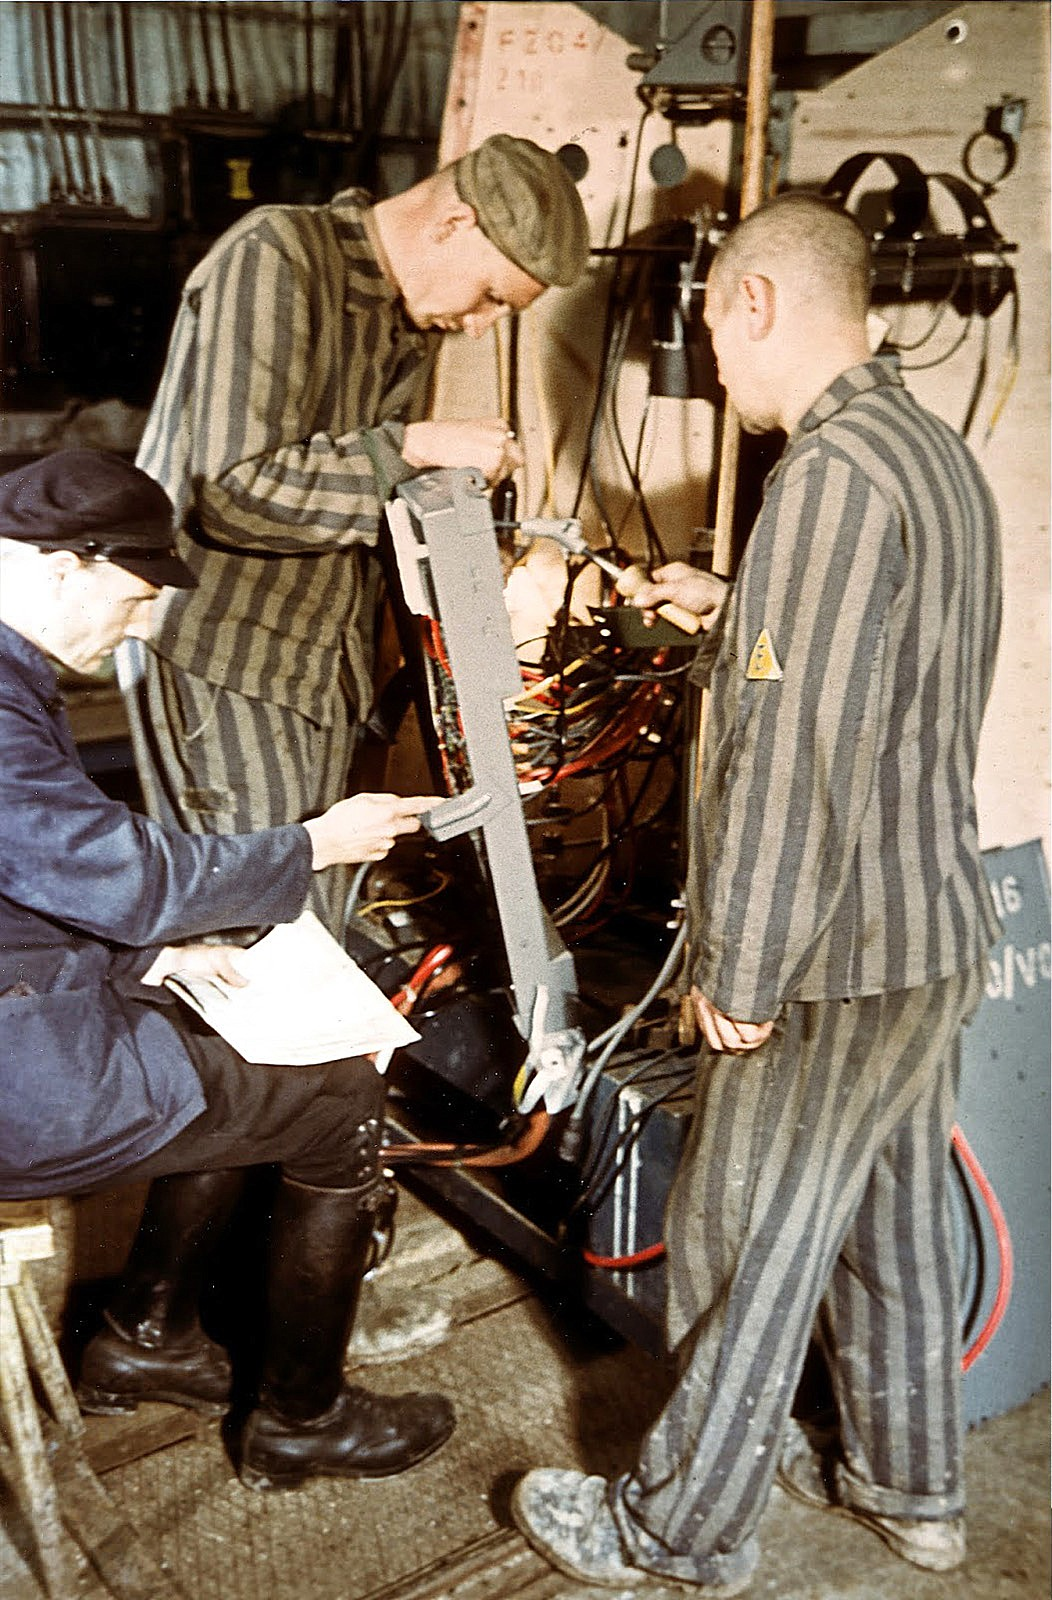 Dora-Mittelbau concentration camp inmates assembling the V-2 rocket